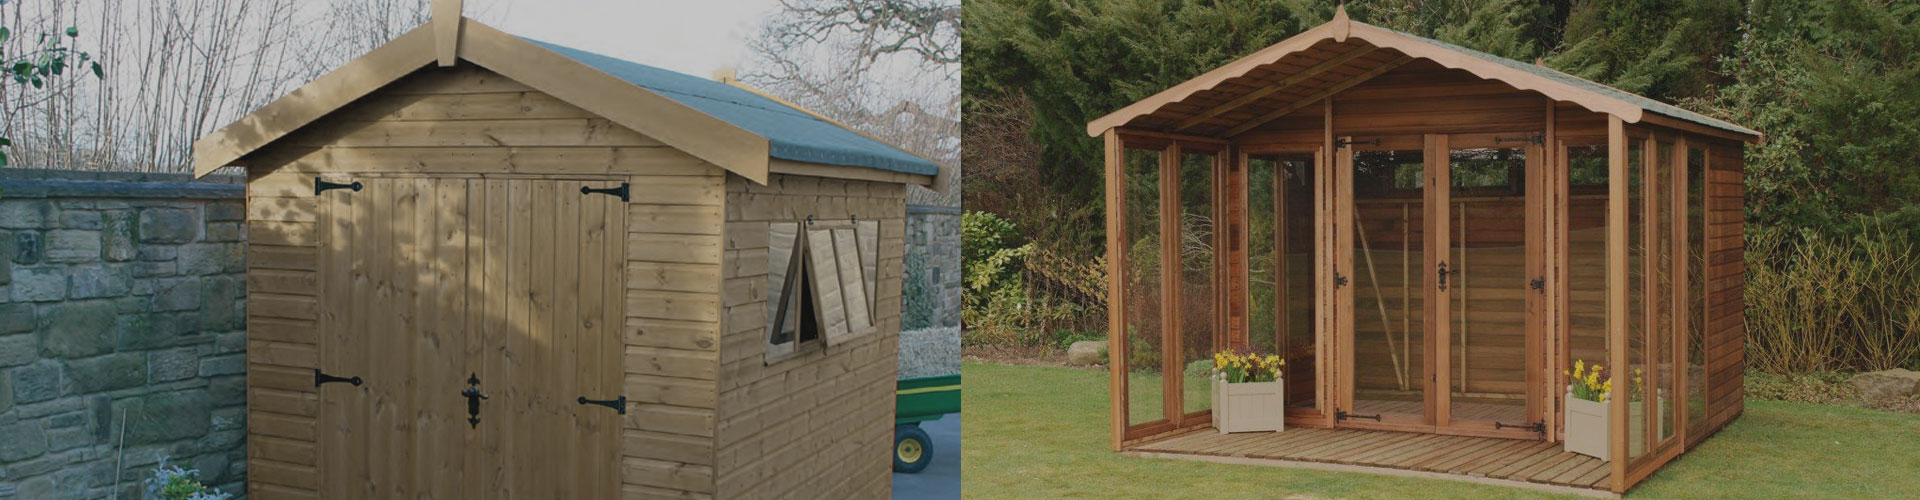 finalized sheds affordable direct customers at pixels is building being builder original size solutions